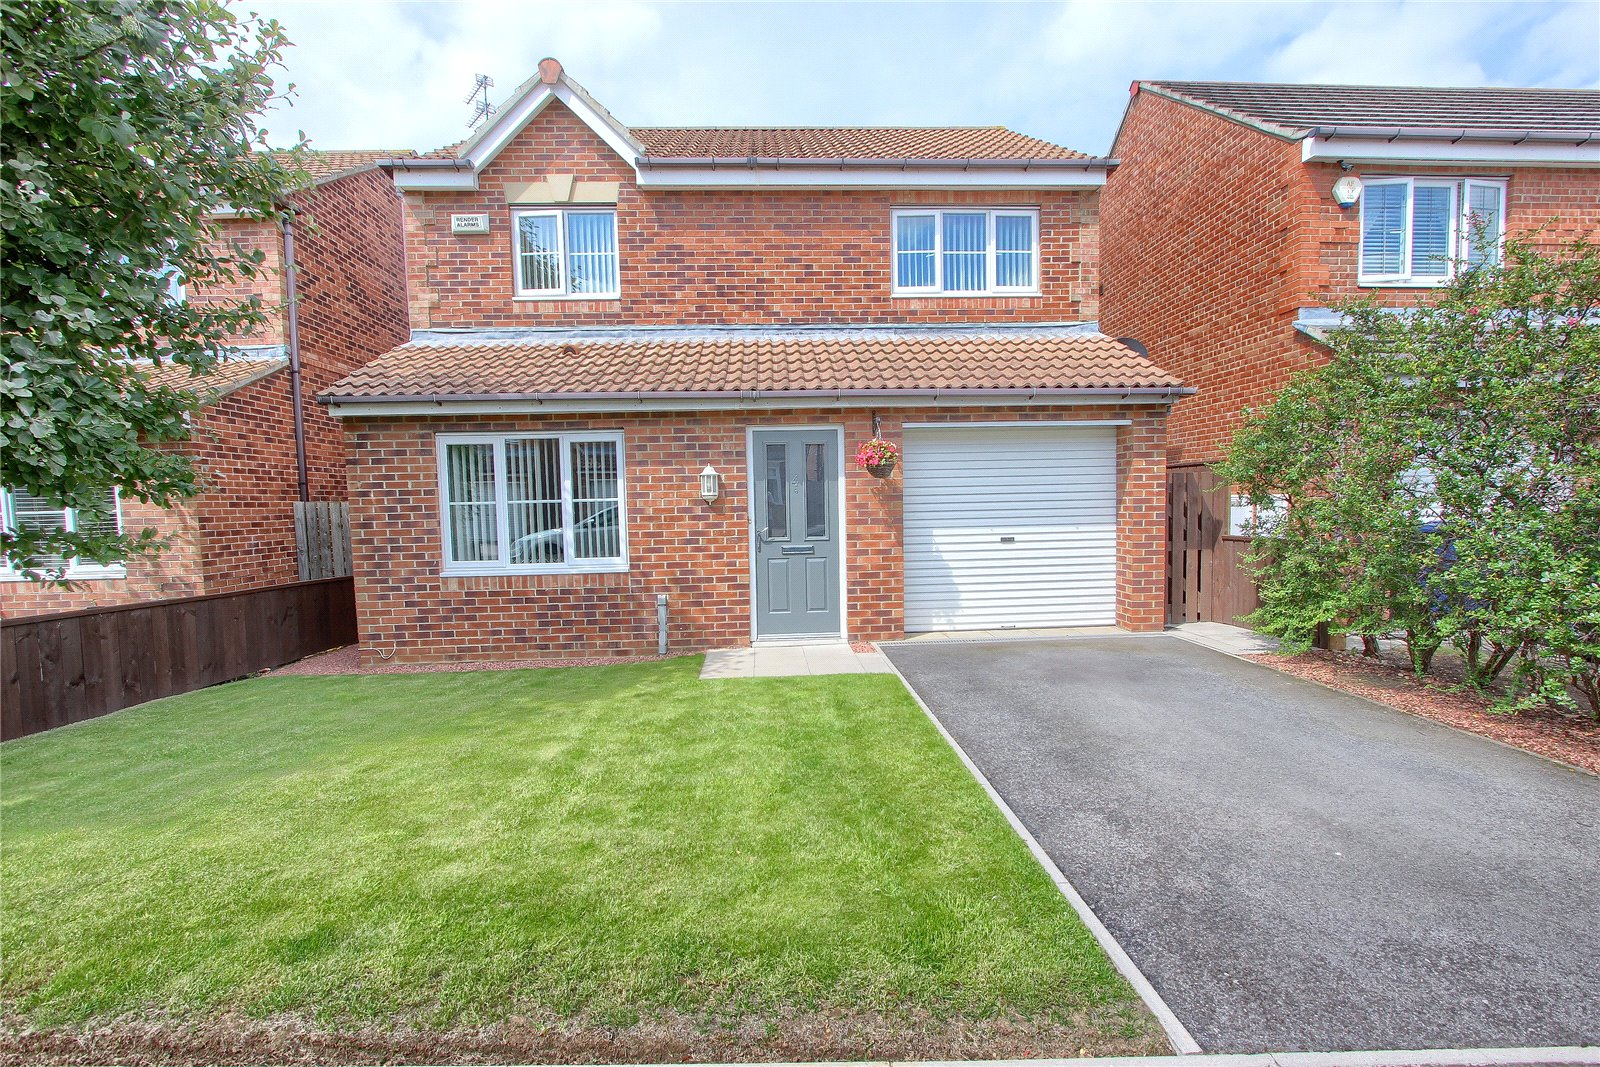 3 bed house for sale in Southwold Close, Redcar - Property Image 1